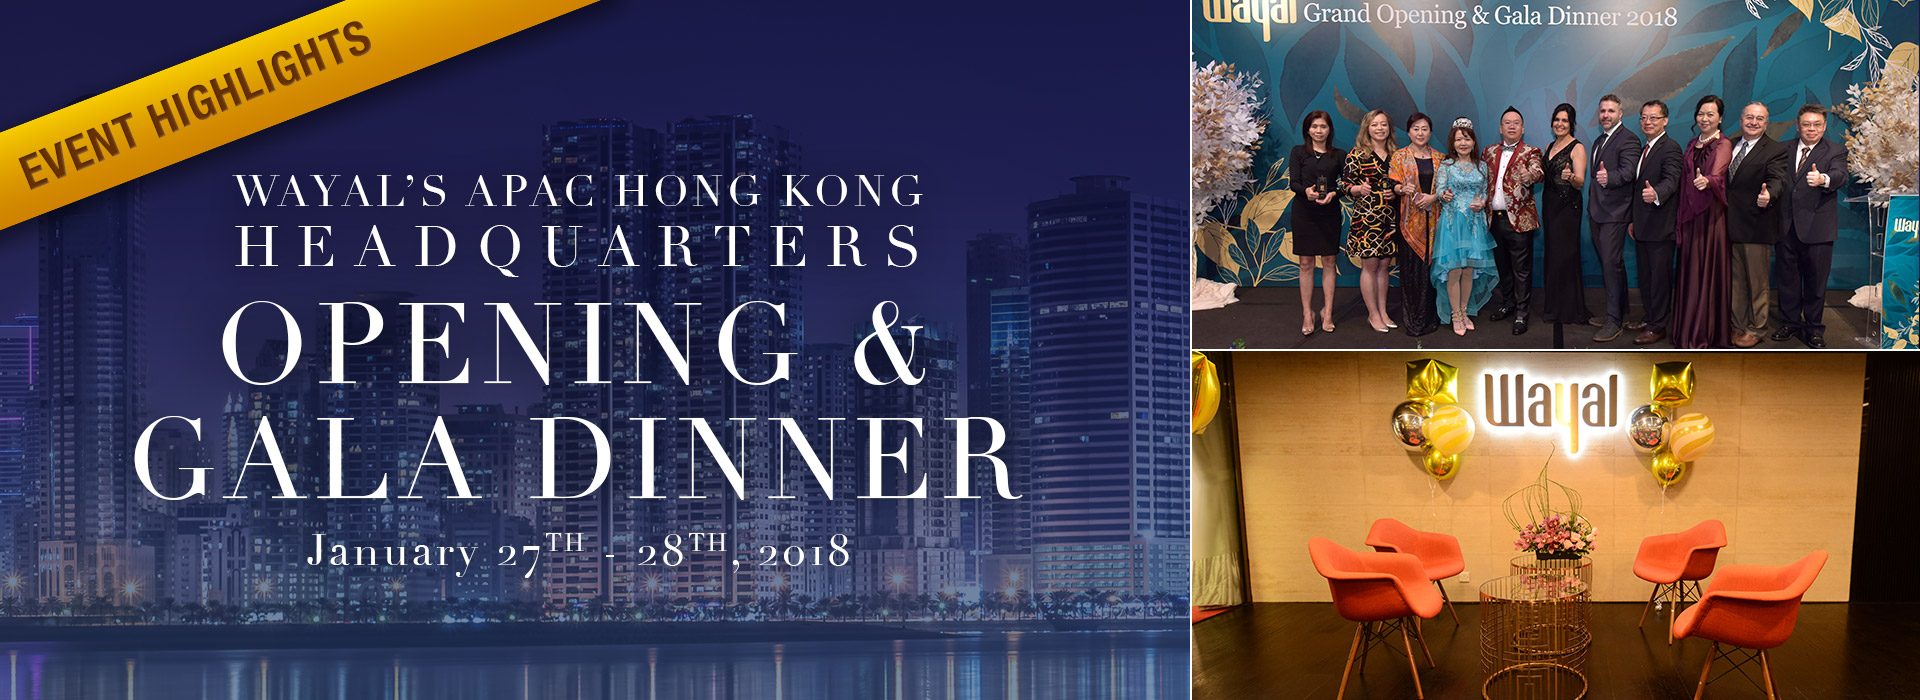 Wayal's APAC Hong Kong Headquarters Opening & Gala Dinner